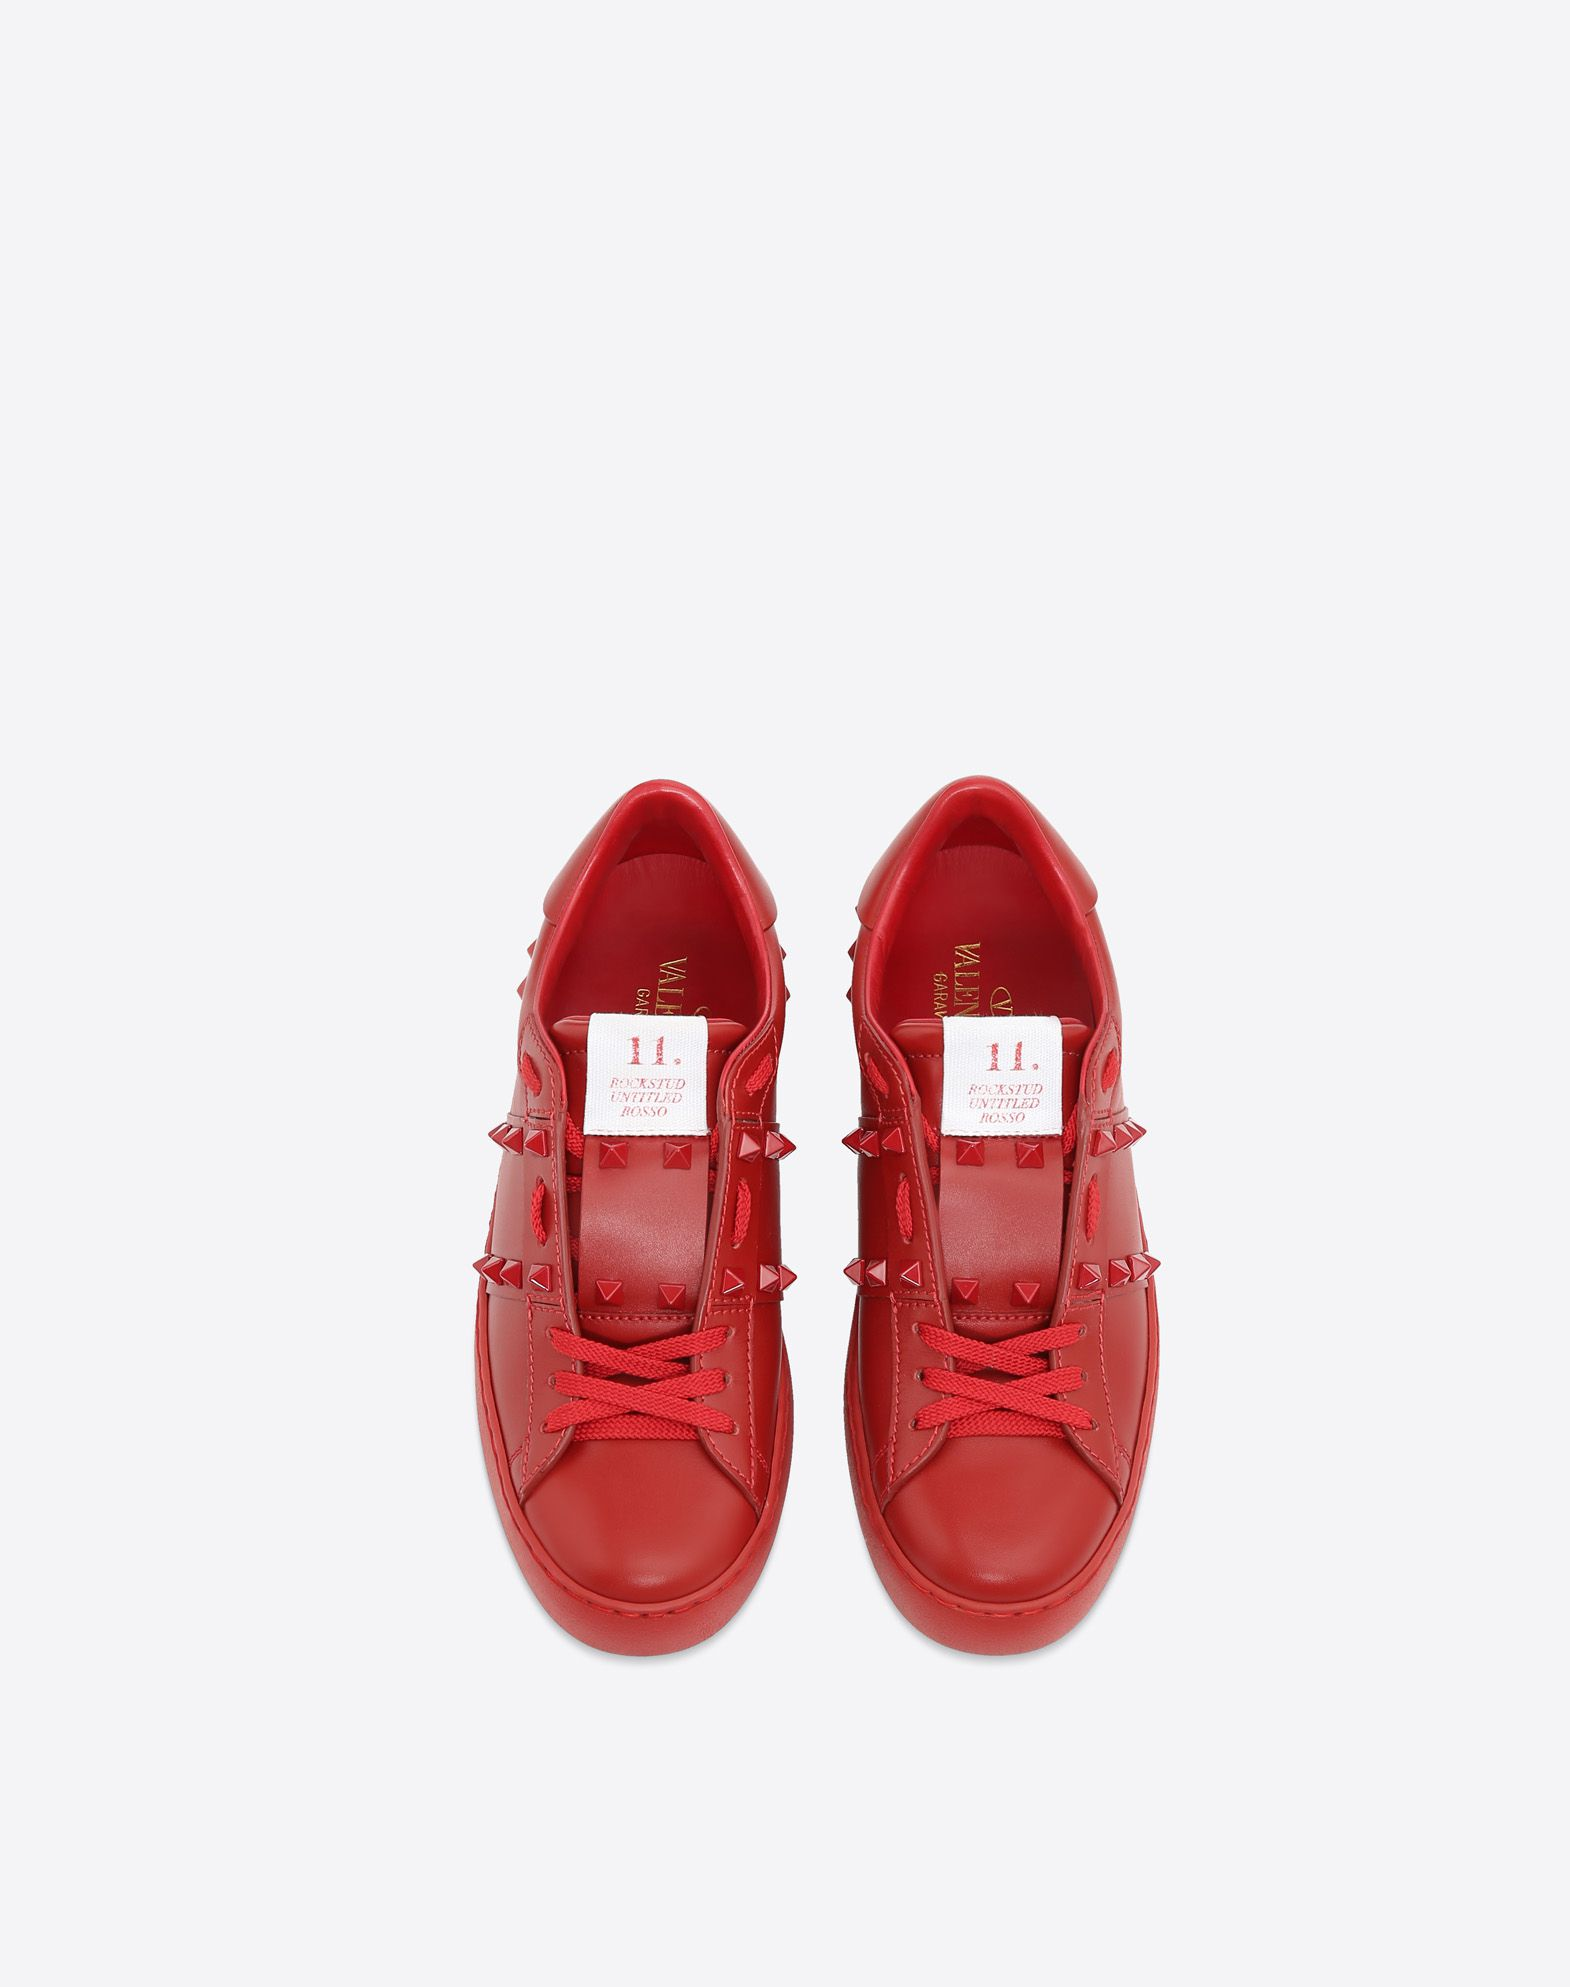 VALENTINO GARAVANI Rockstud Untitled Rosso Sneaker LOW-TOP SNEAKERS D e